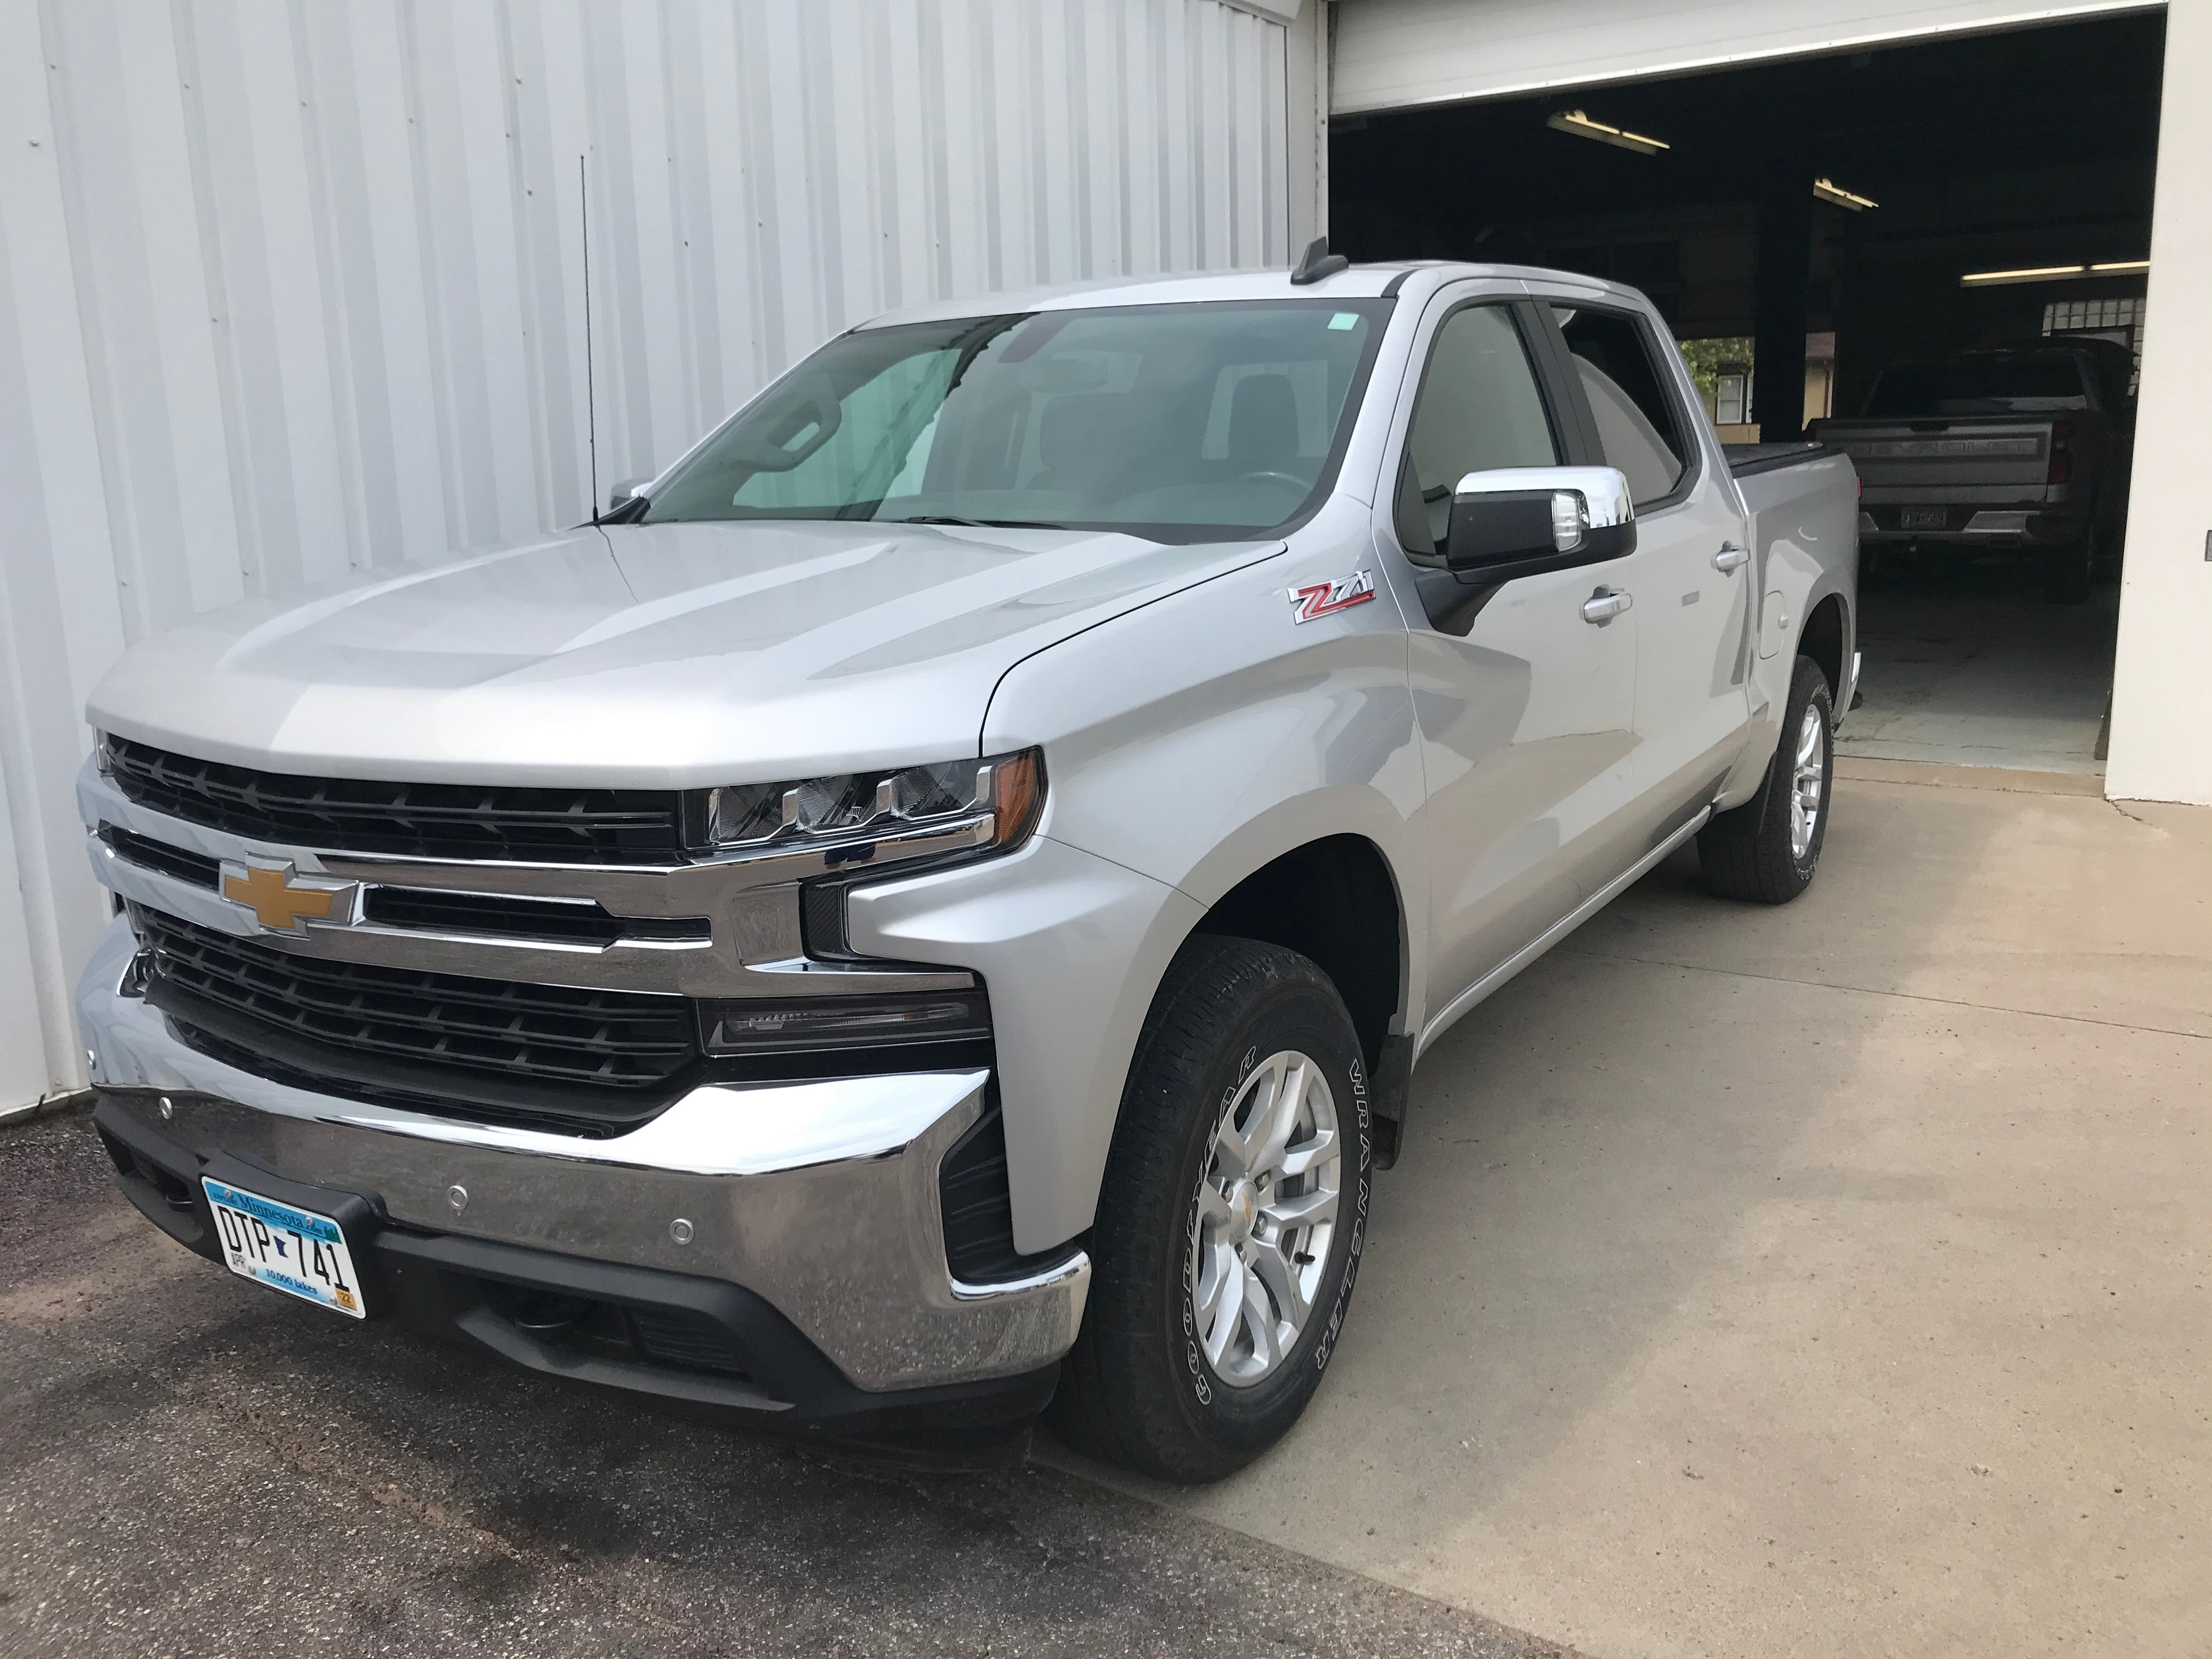 Certified 2020 Chevrolet Silverado 1500 LT with VIN 3GCUYDED6LG277250 for sale in Arlington, Minnesota